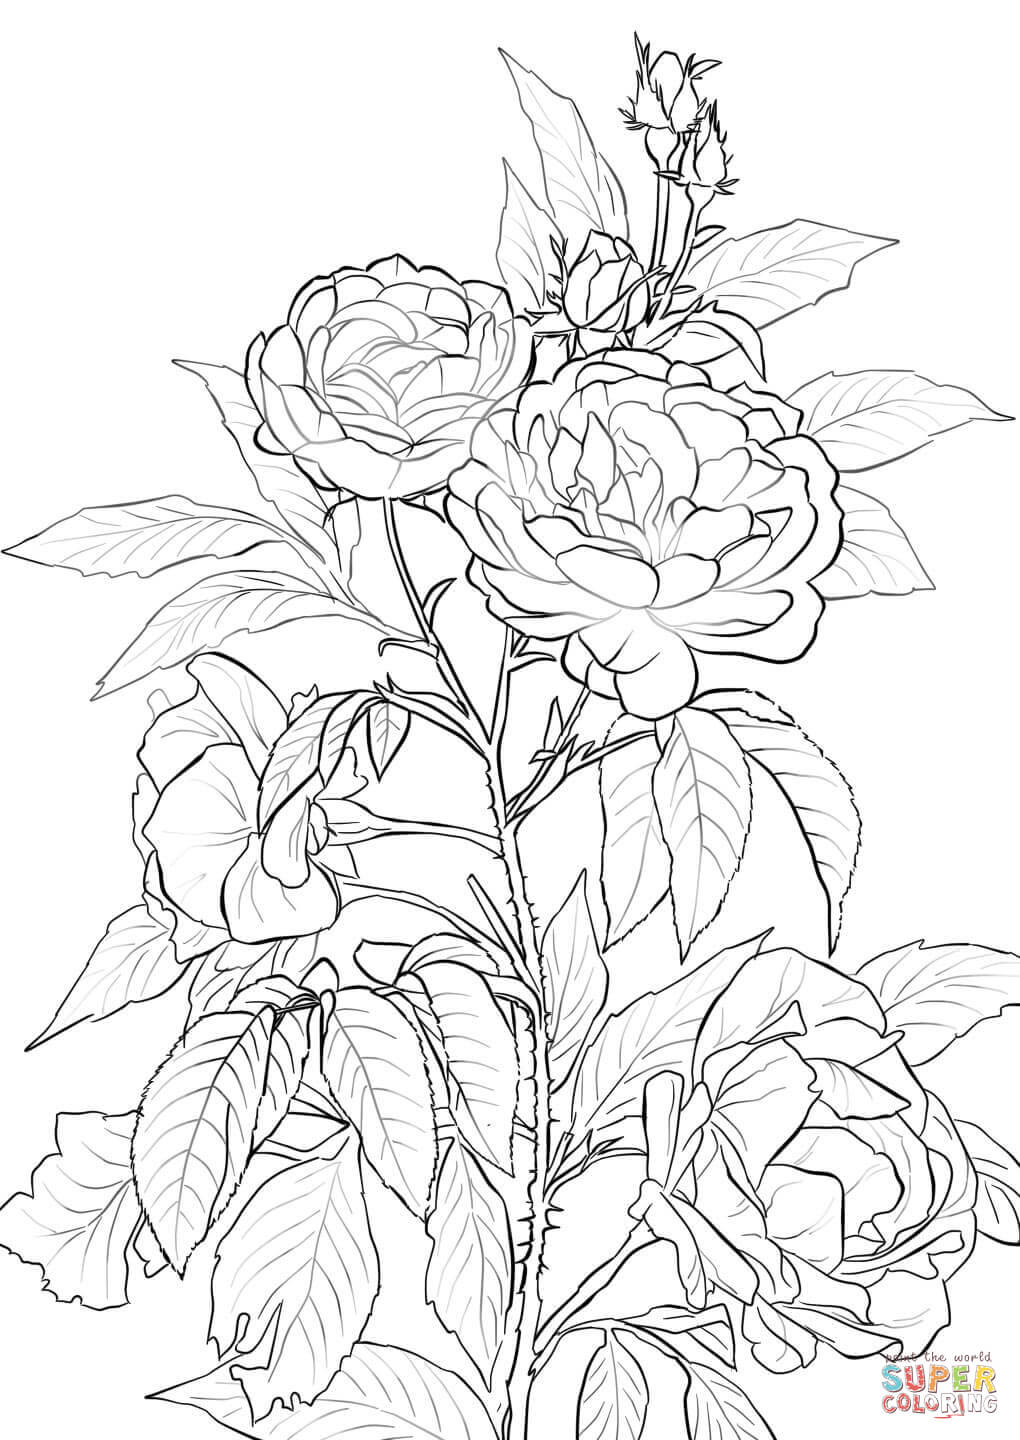 coloring book rose free printable roses coloring pages for kids coloring book rose 1 1